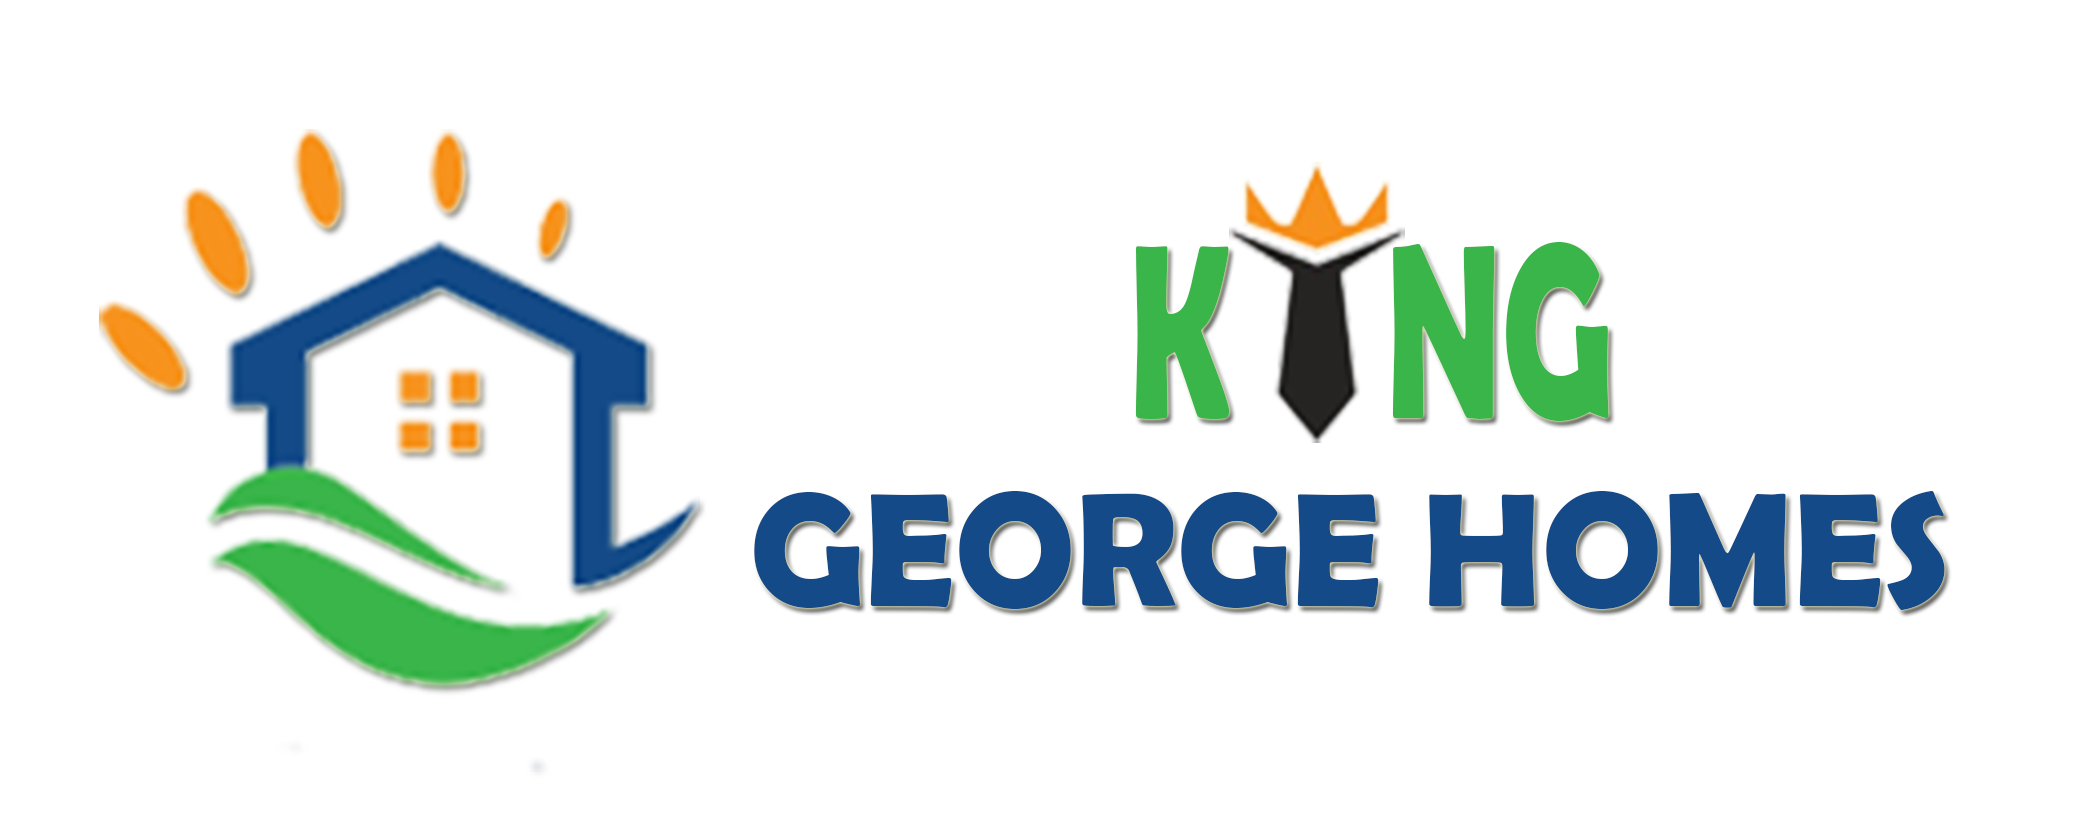 King George Homes